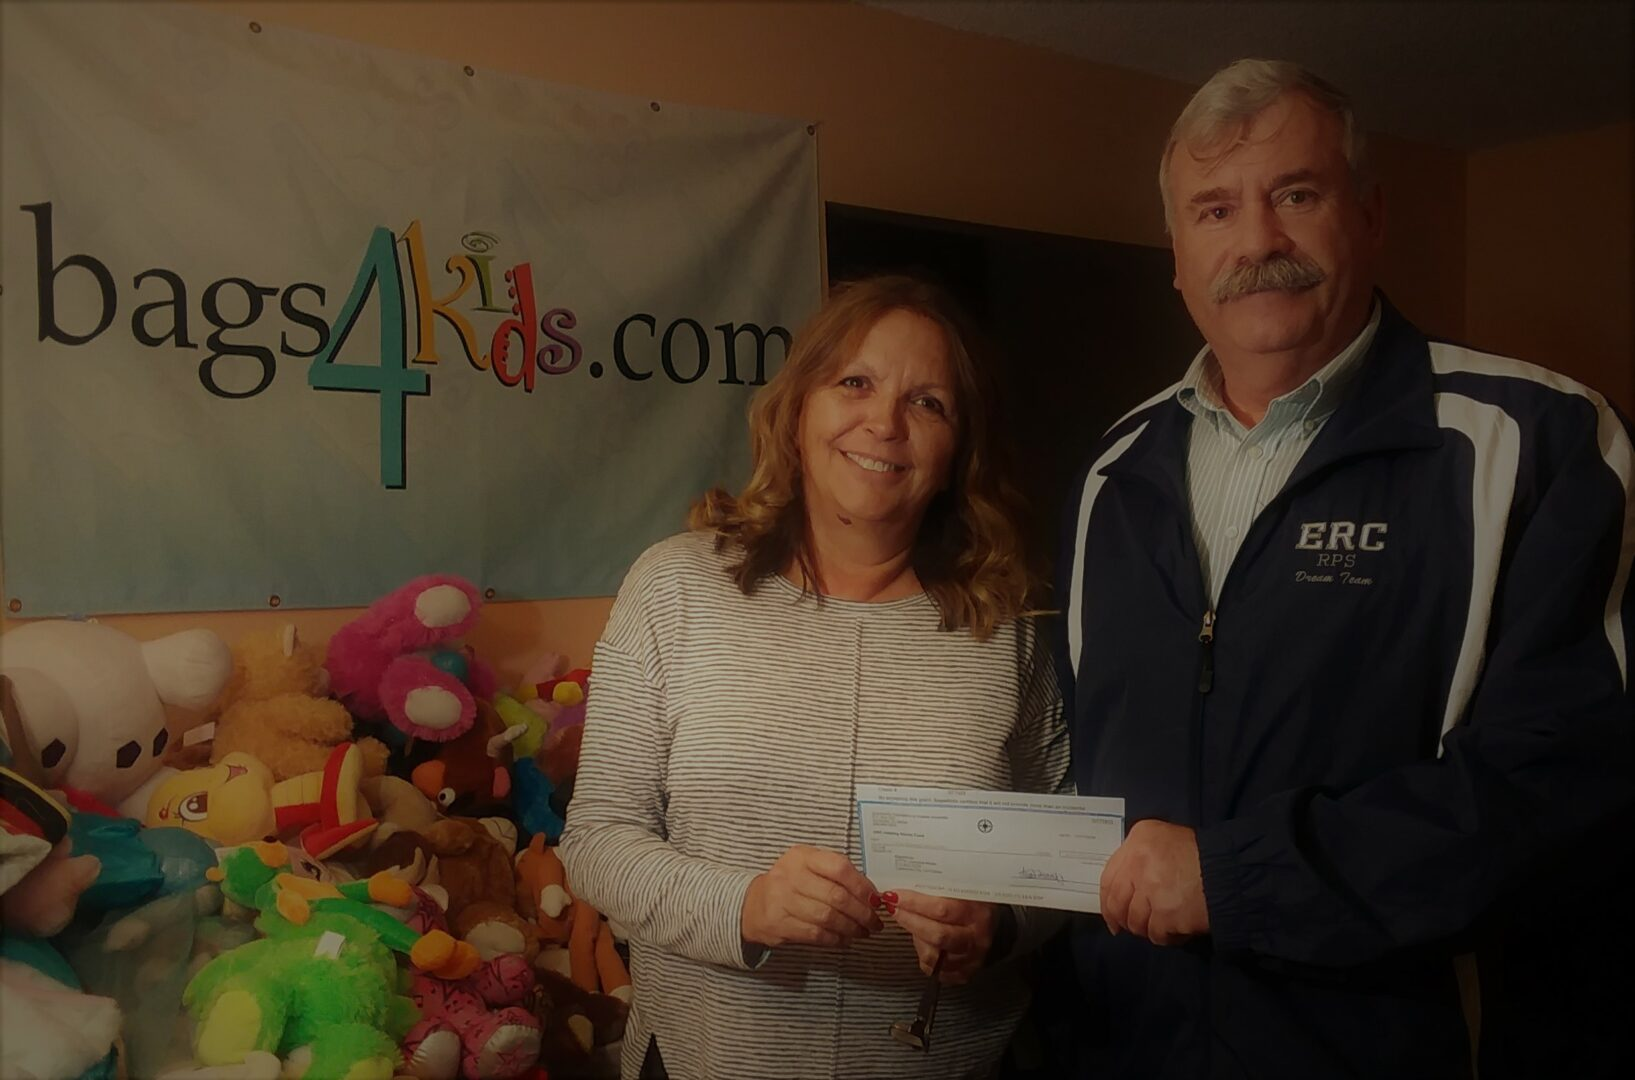 LaJuana Moser donating a check to Bags4Kids